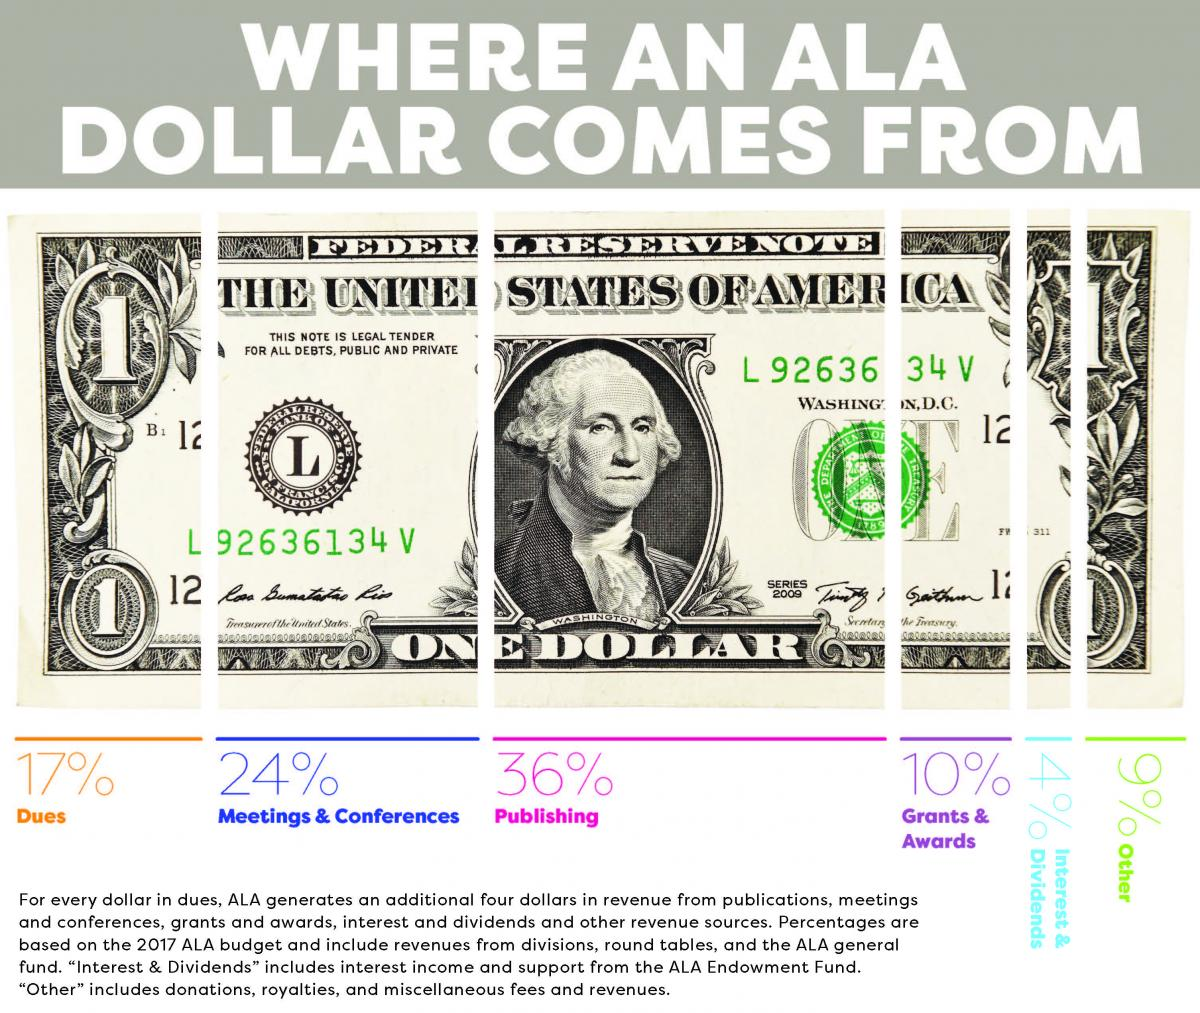 "Where an American Library Association  Dollar Comes From: ""Image of U.S. Dollar in segments corresponding to percentages of ALA revenue: 7% Dues; 24% Meeting and Conferences; 36% Publishing; 10% Grants and Awards; 4% Interest and Dividends; 9% Other. For every dollar in dues, ALA generates an additional four dollars in revenue from publications, meetings and conferences, grants and awards, interest and dividends and other revenue sources. Percentages are based on the 2017 ALA budget and include revenues from divisions, round tables, and the ALA general fund. ""Interest & Dividends"" includes interest income and support from the ALA Endowment Fund.  ""Other"" includes donations, royalties, and miscellaneous fees and revenues."